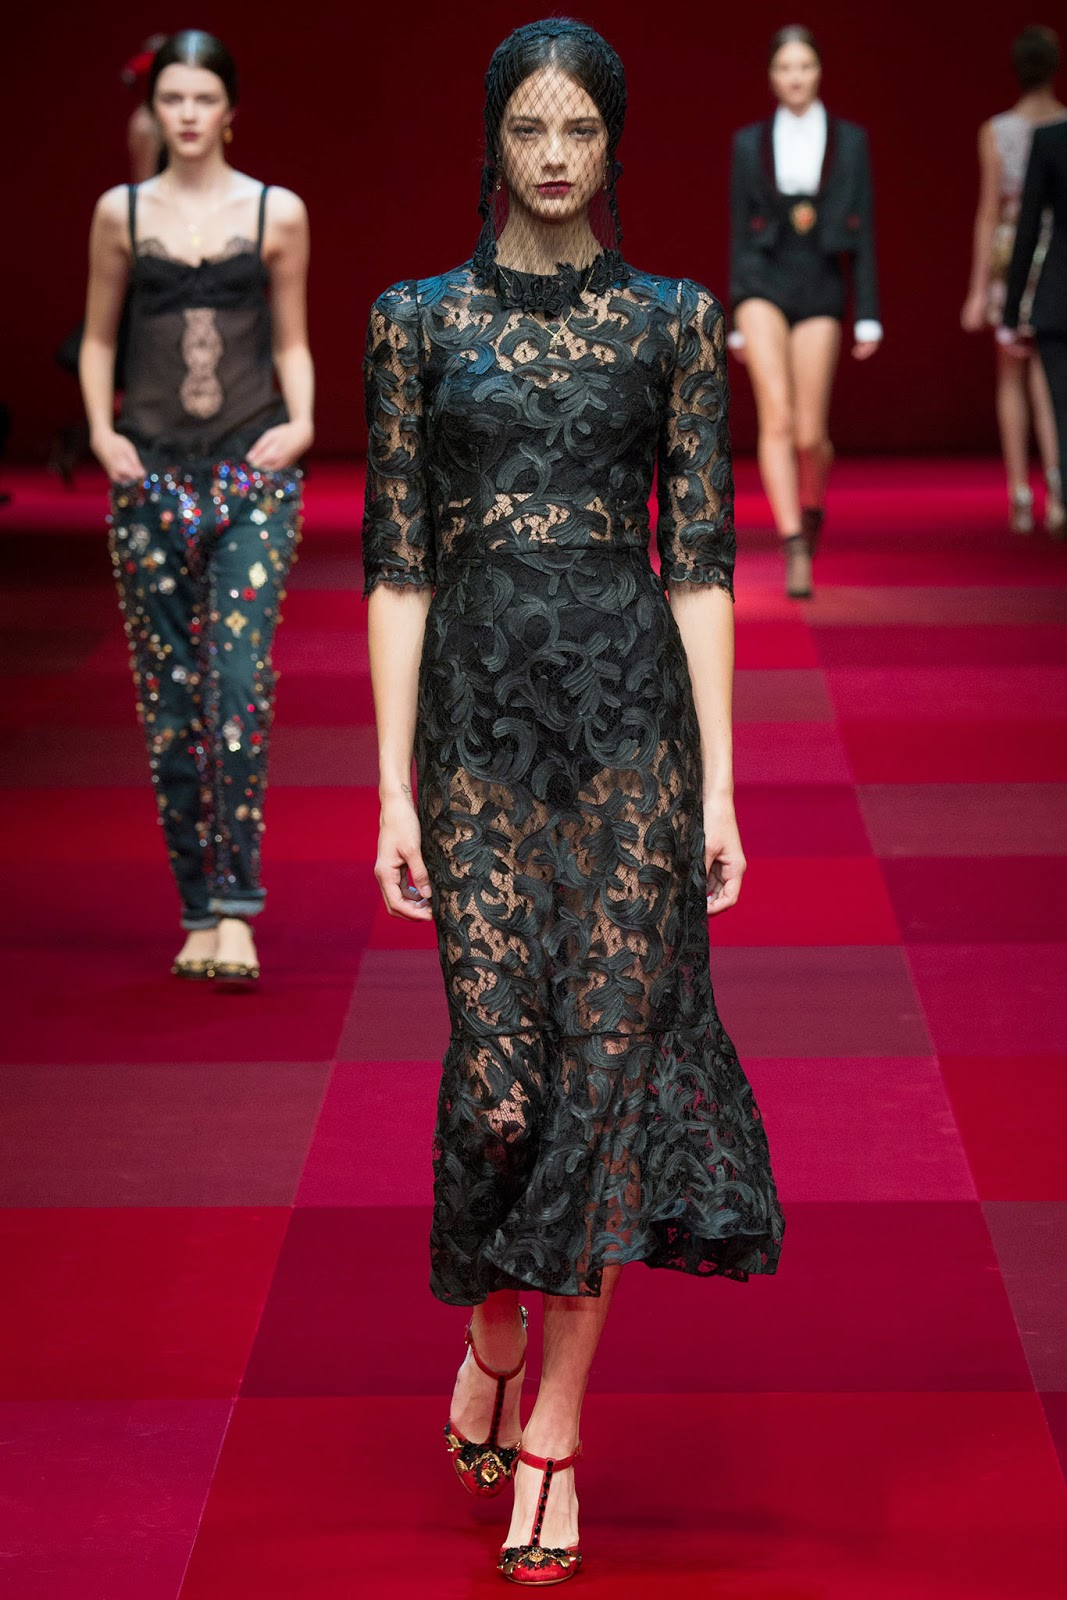 Dolce And Gabbana Winter 2015 Woman Collection: Niwdenapolis: DOLCE AND GABBANA SPRING-SUMMER 2015 CAMPAIGN